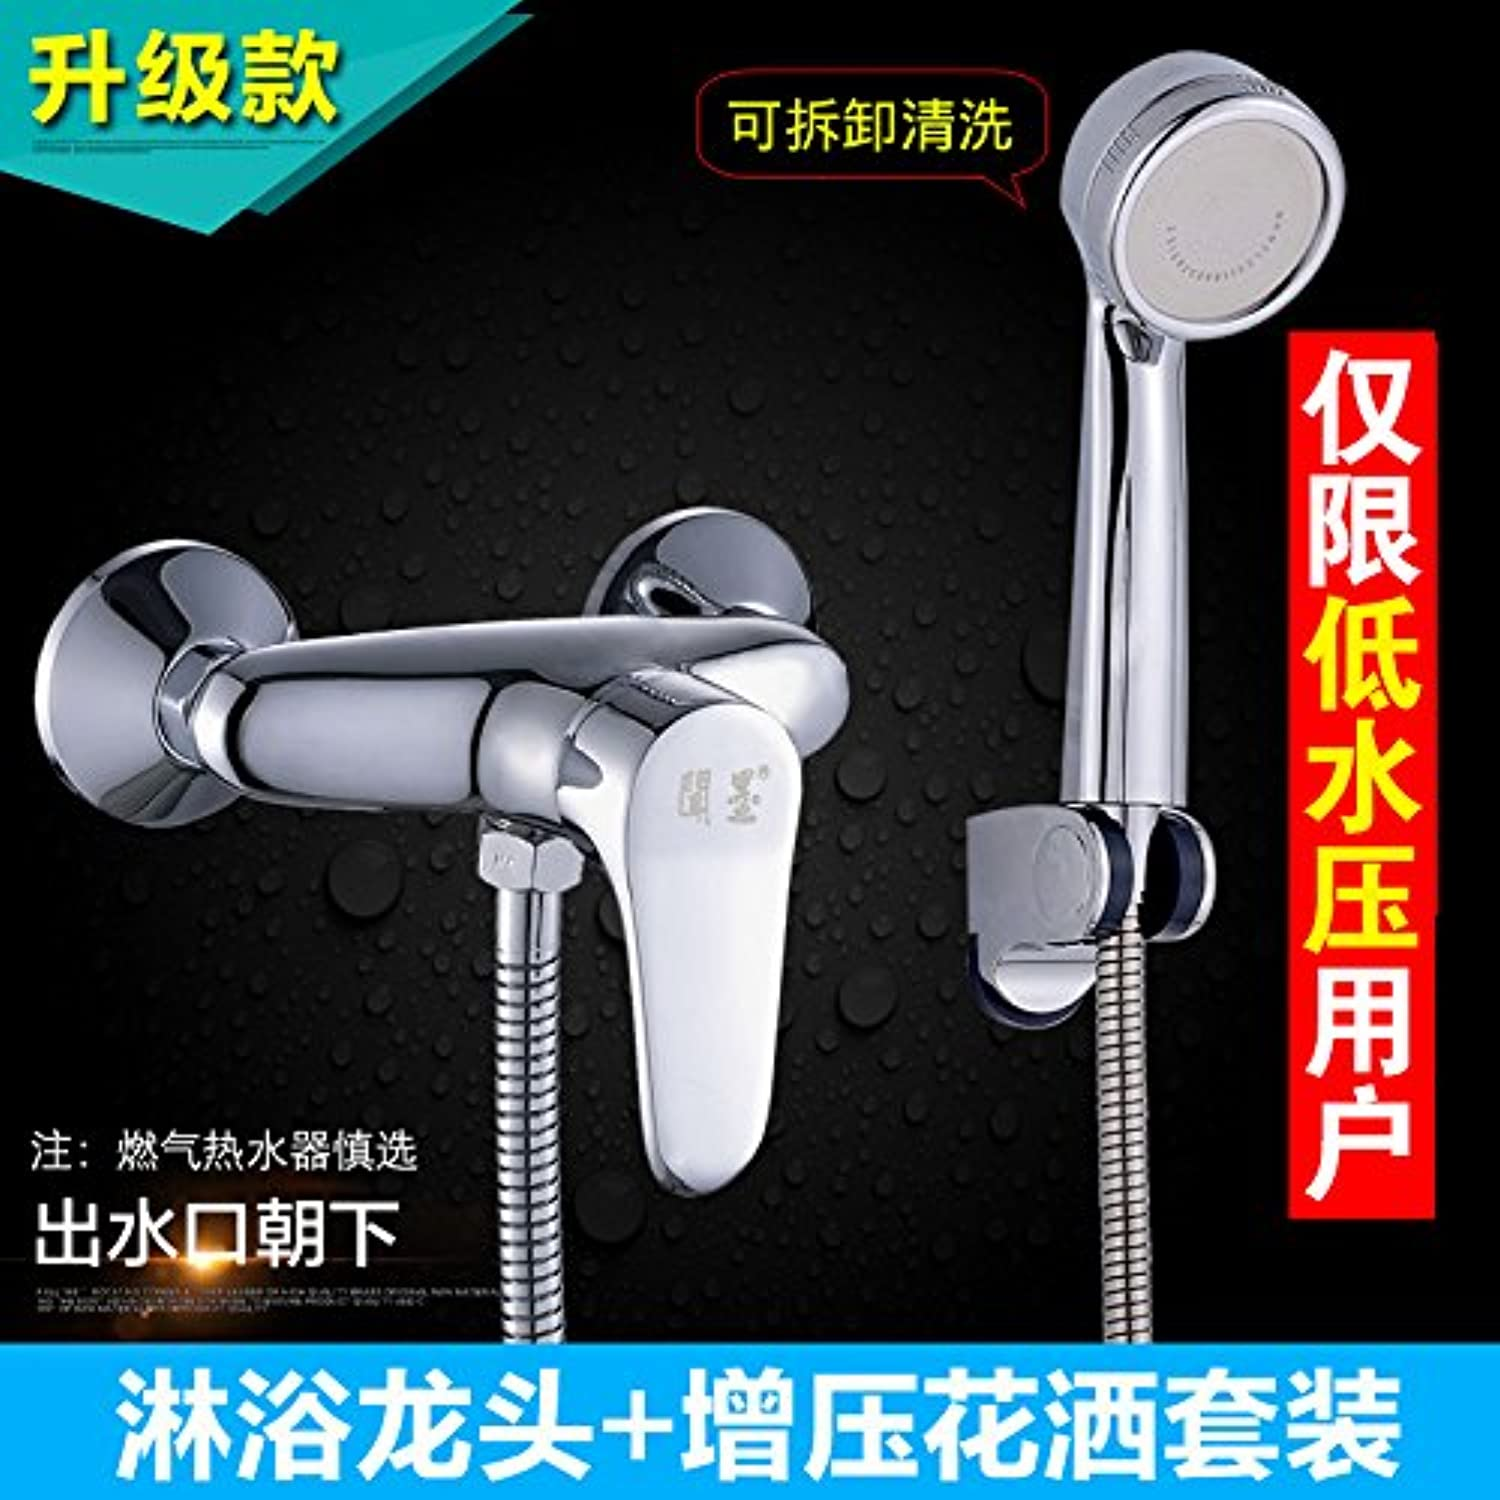 Gyps Faucet Kitchen Faucet Handle Stainless Basin Faucet Tap Shower Faucet Water Heater of Solar Water Heater Hot and Cold Water Mixer Valve Bath Shower Mixing Valve Faucet Below + Copper Bo